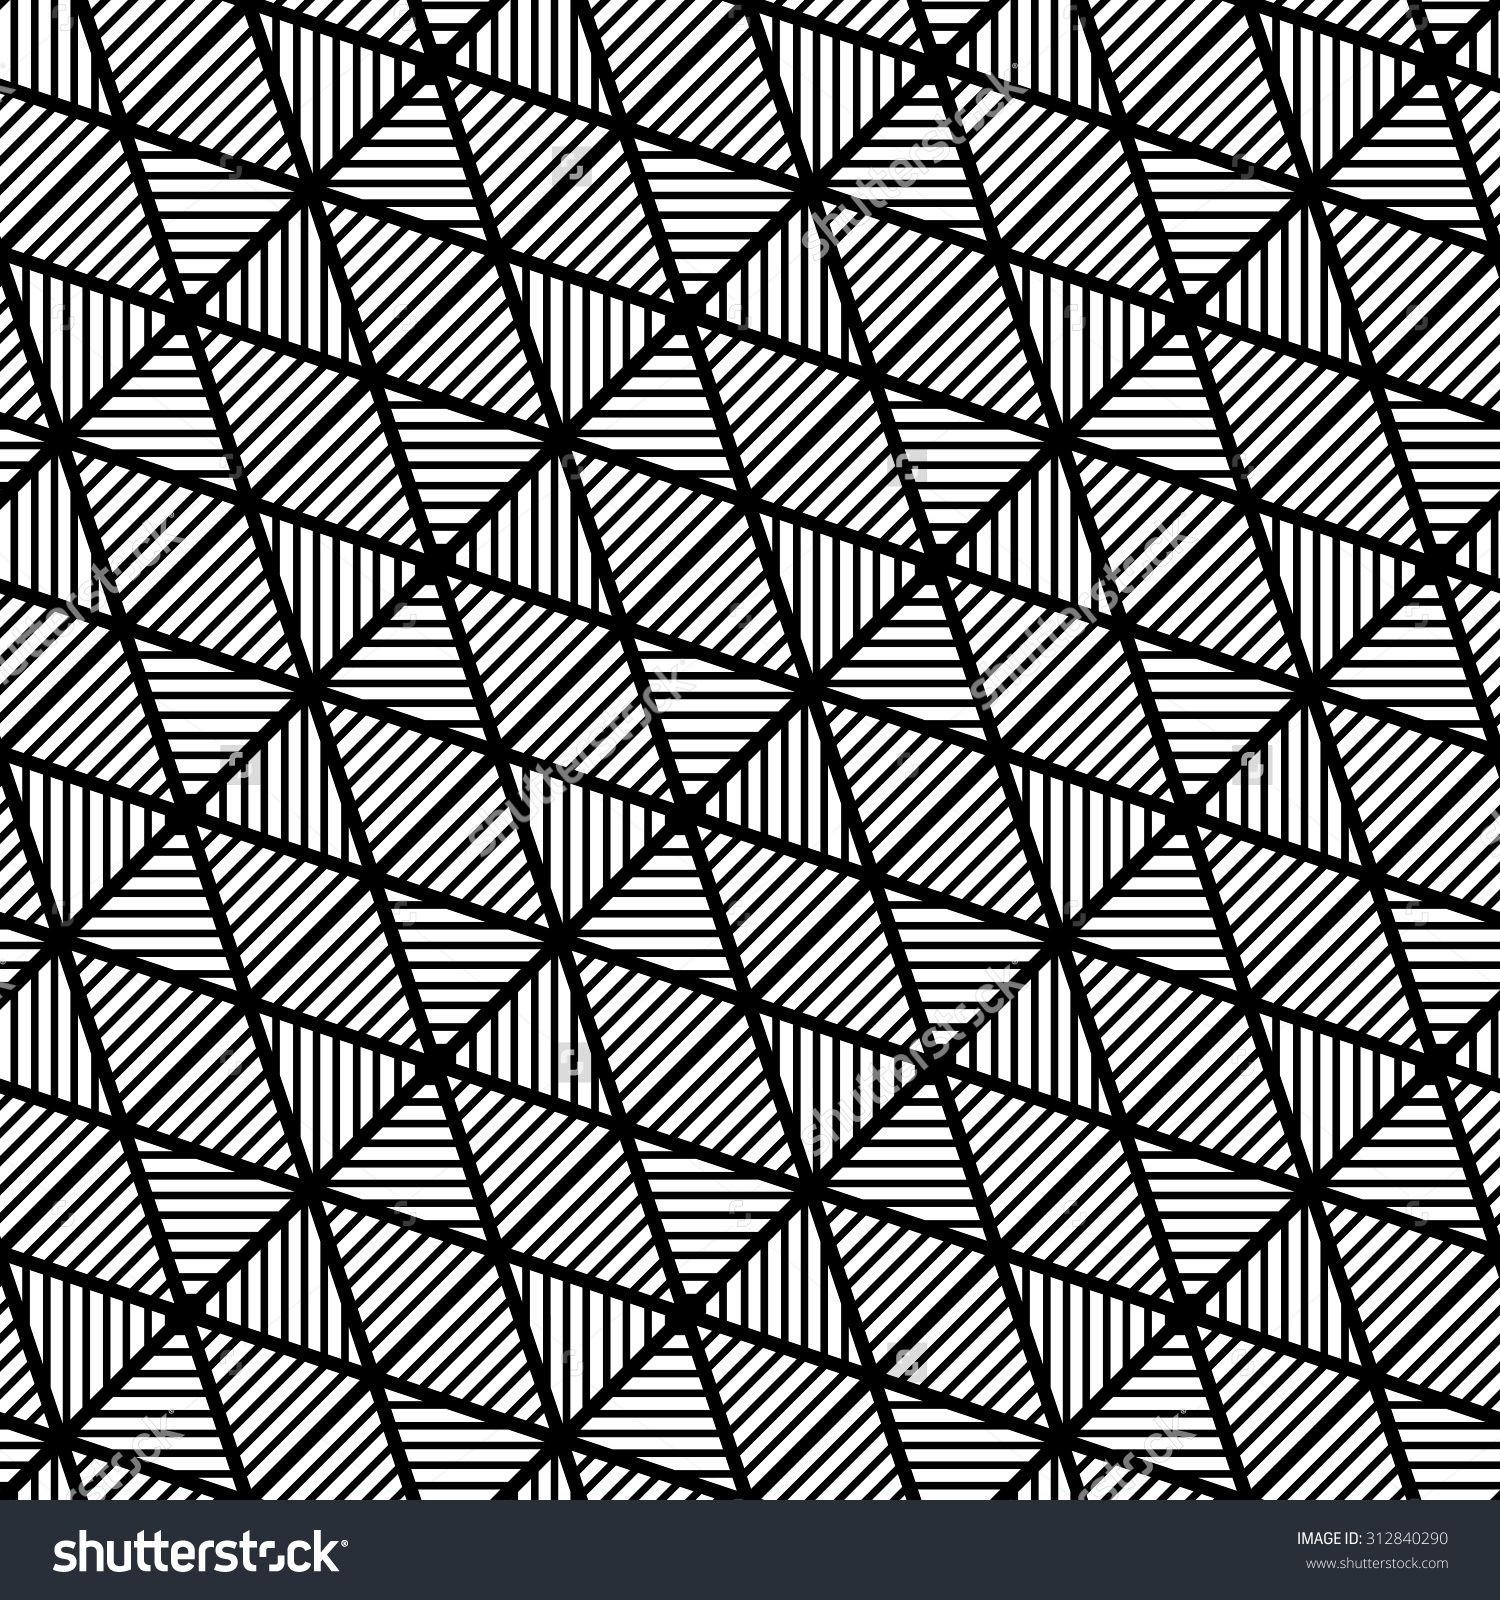 Abstract Geometric Black And White Seamless Pattern. Banco de ilustração vetorial 312840290 : Shutterstock